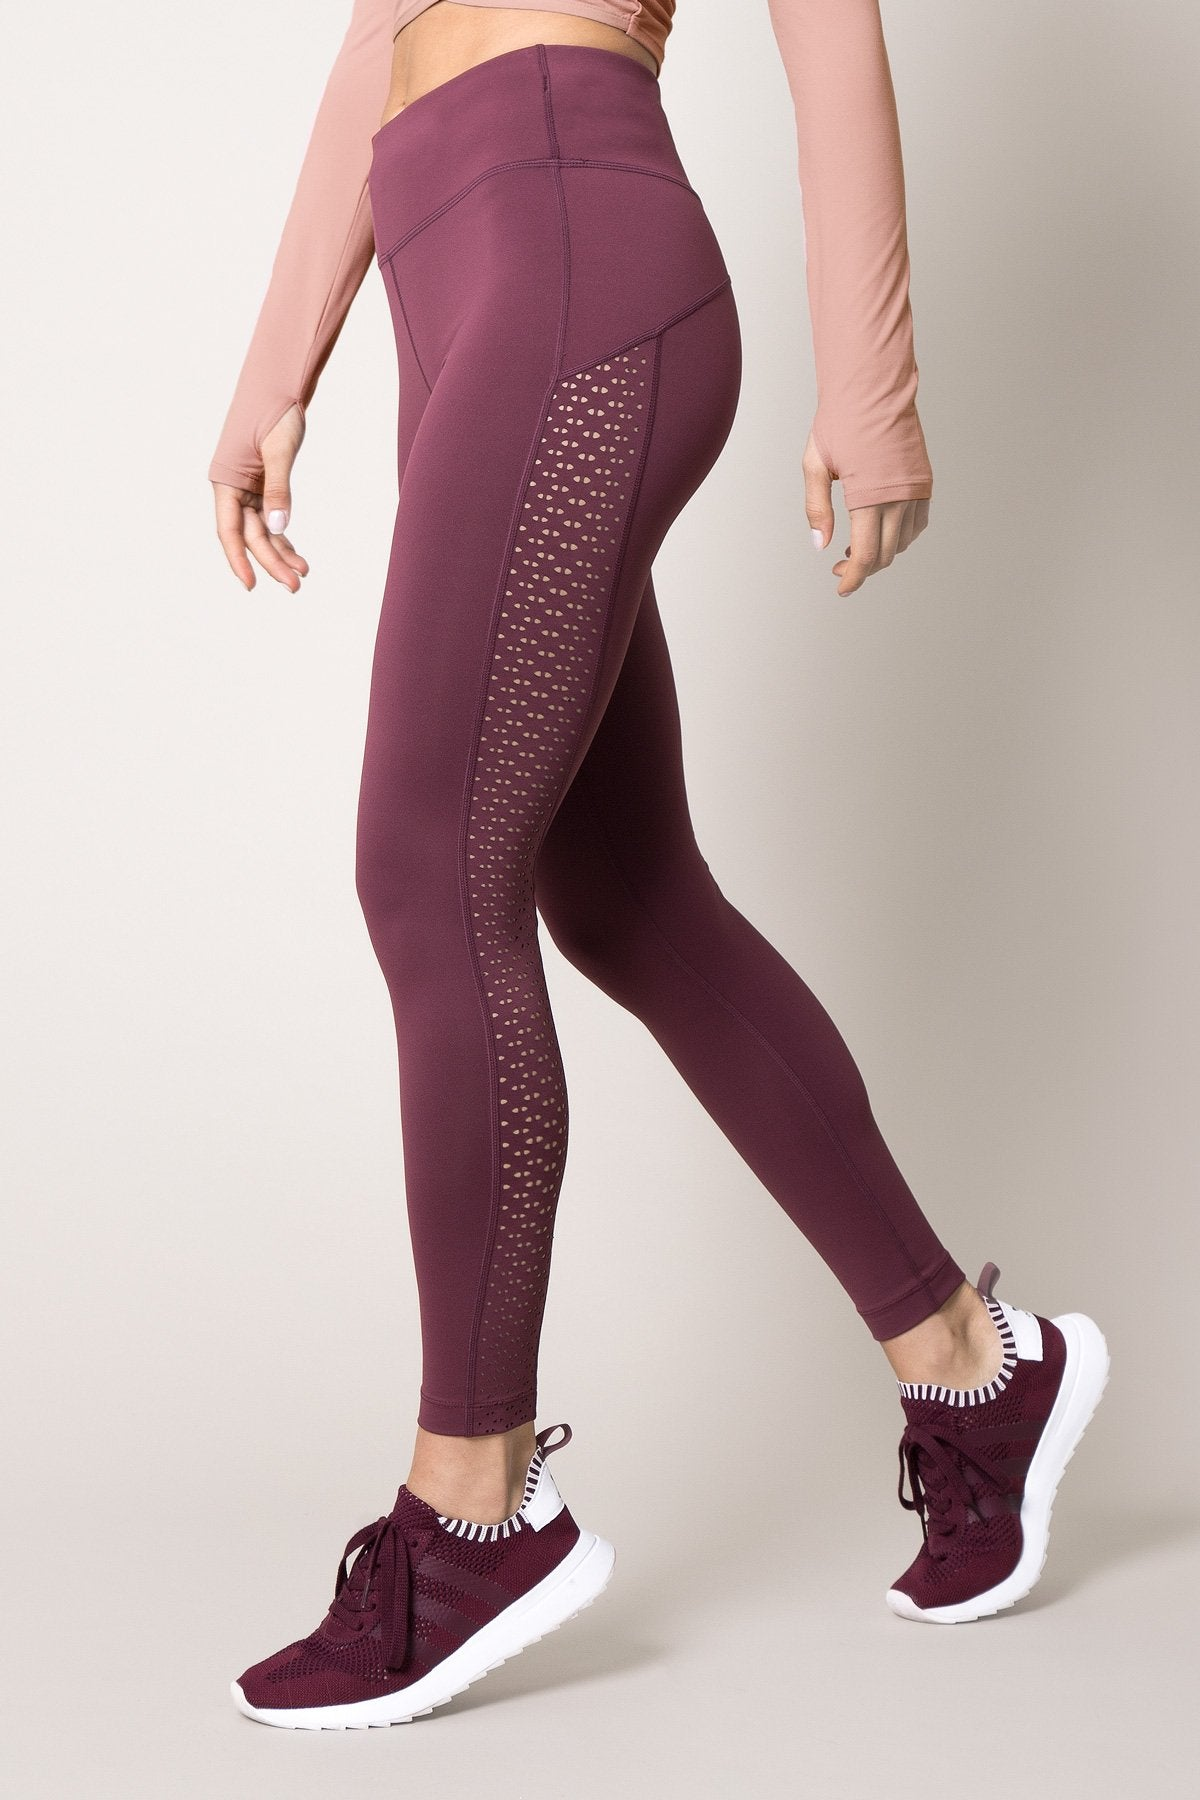 Haven 7/8 High Waisted Laser Cut leggings by MPG Sport